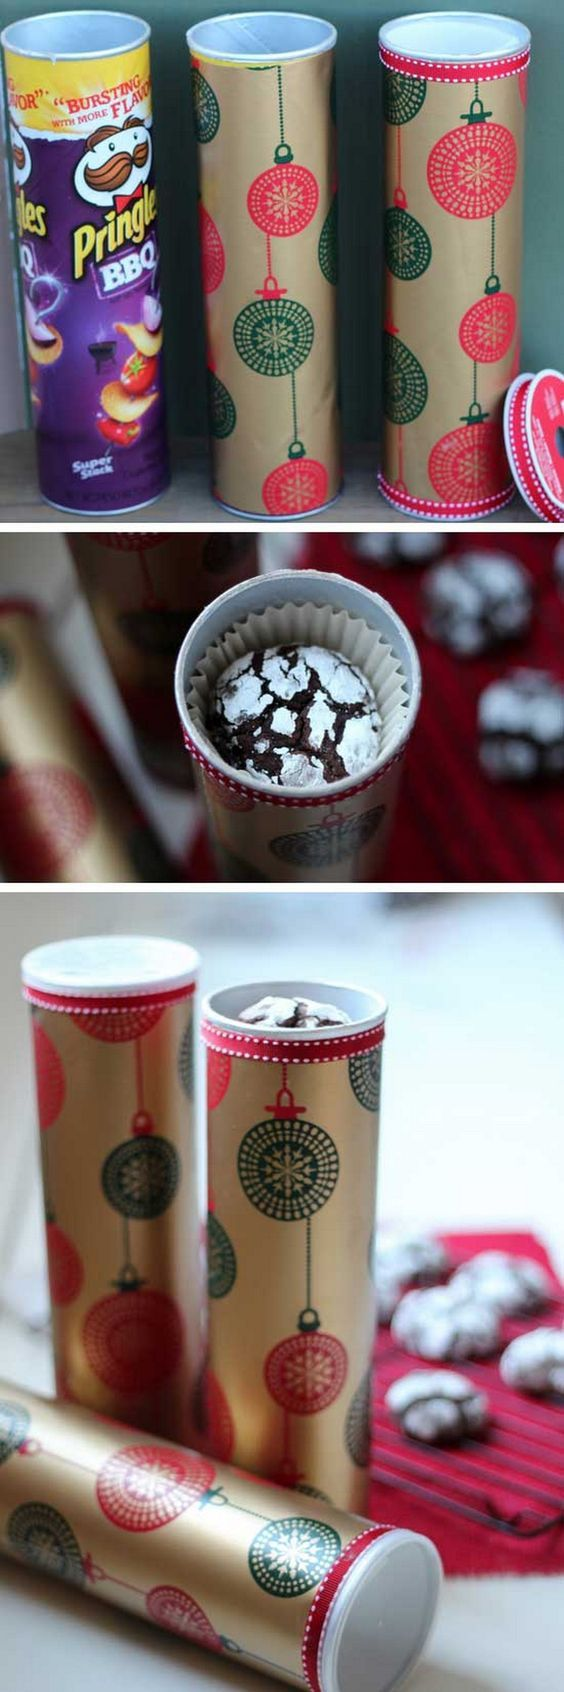 Best DIY Christmas Gifts Ideas for Your Family or Friends #cheapgiftideas